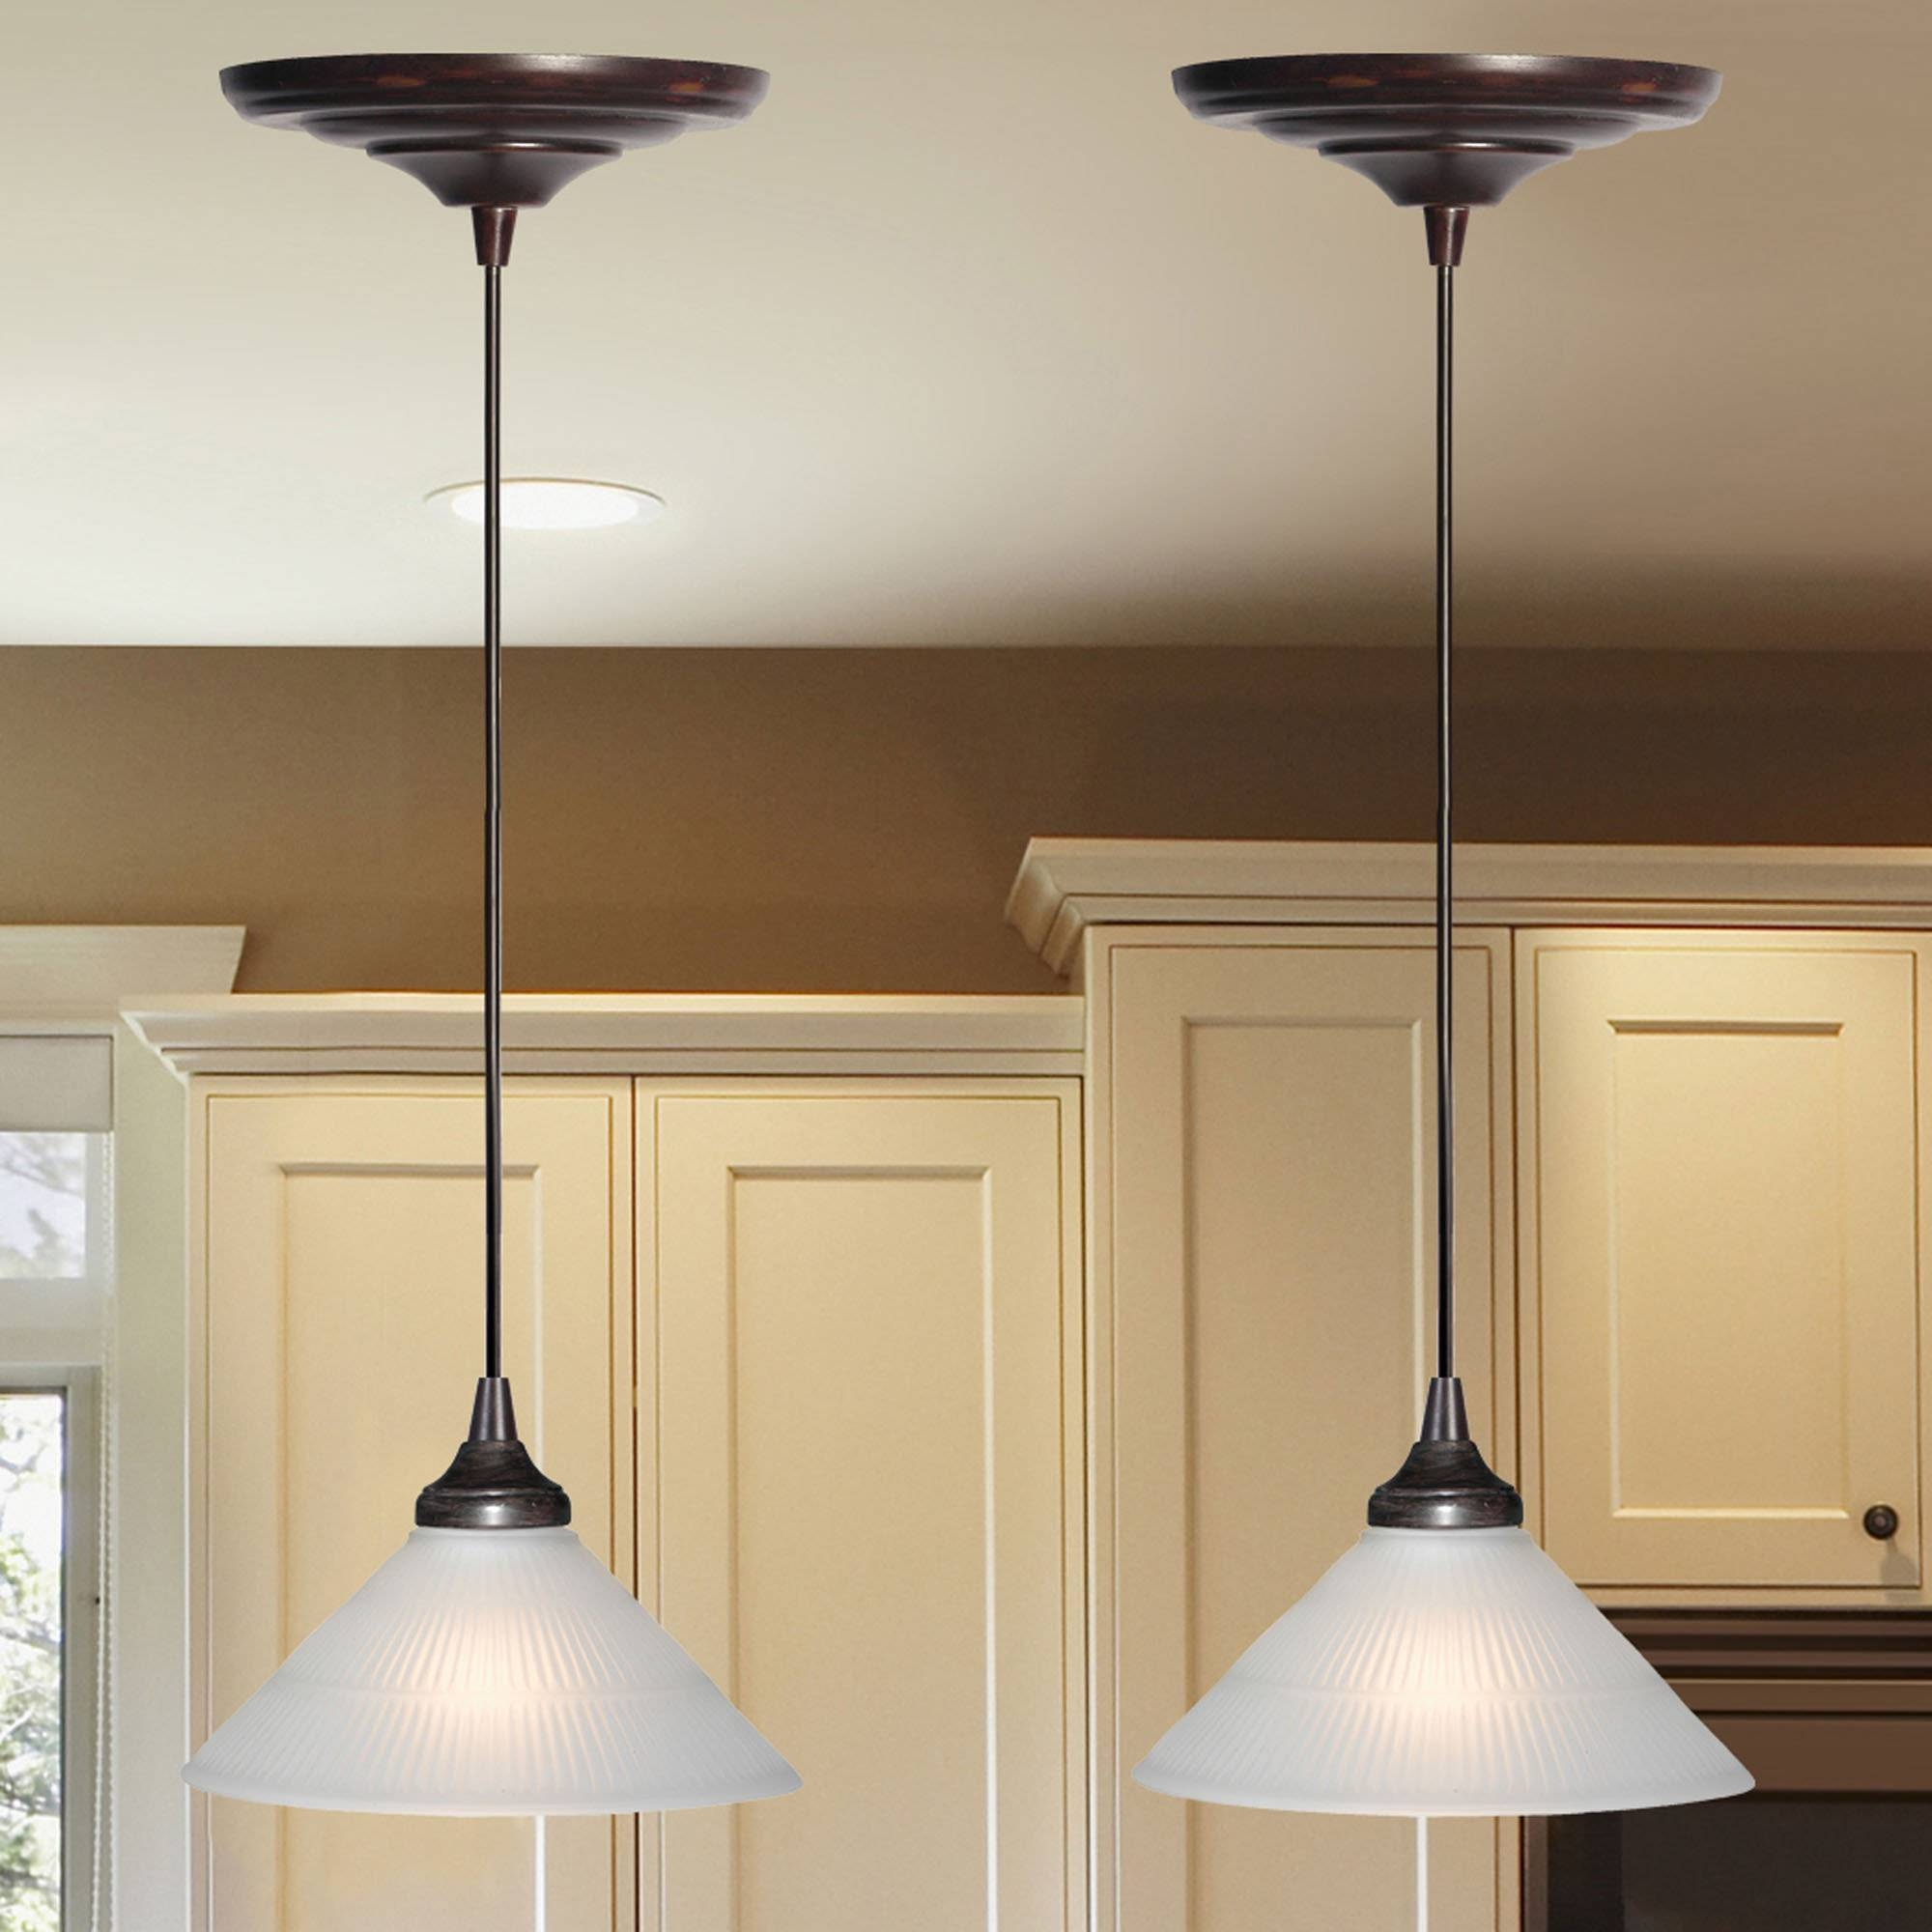 Instant Pendant Light Conversion Kit - Baby-Exit intended for Instant Pendants (Image 5 of 15)